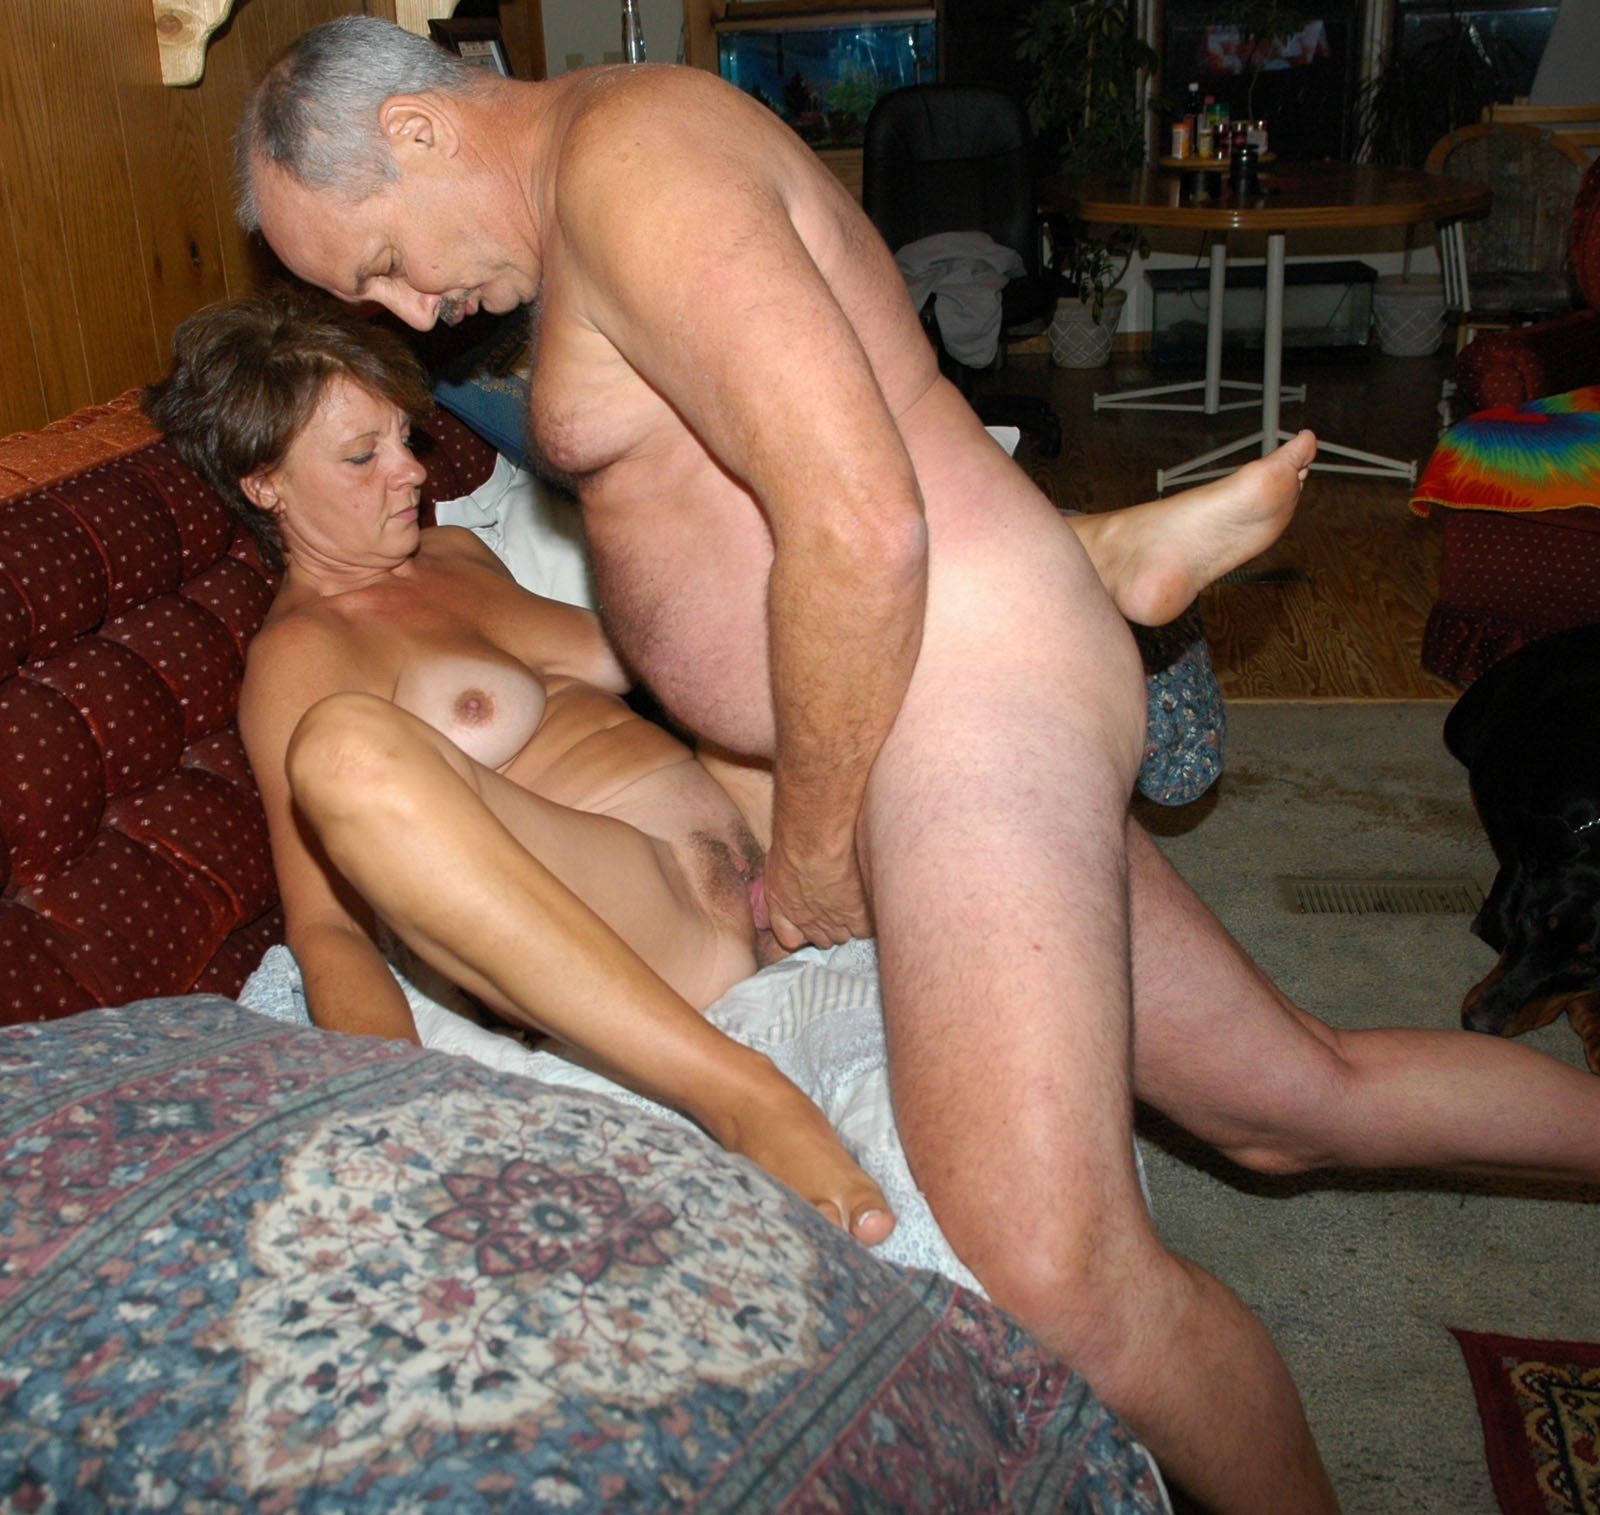 Old folks bisex party hot mature wife cim 6